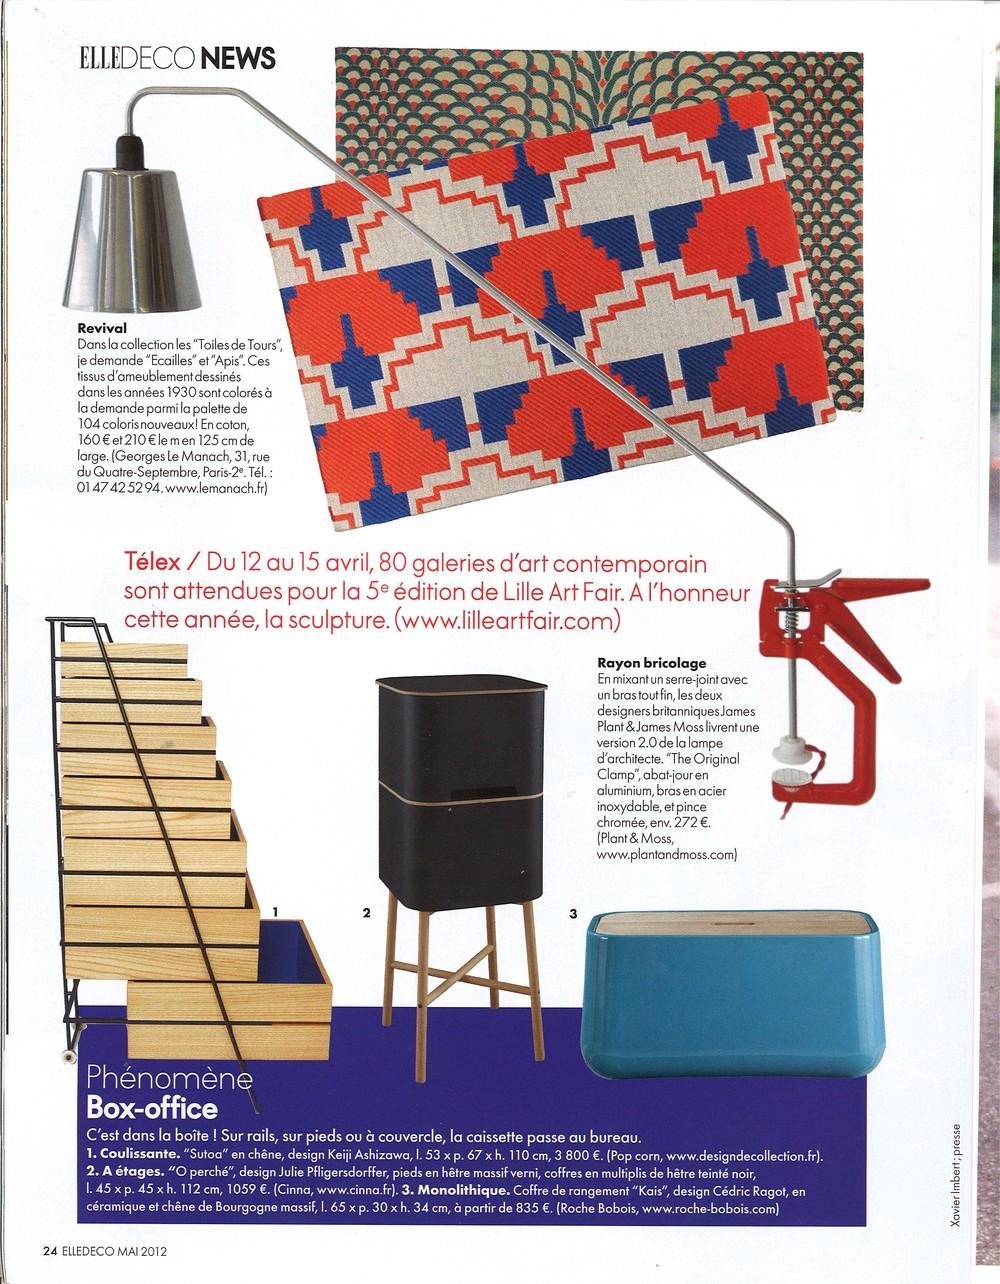 Publication: Elle Decoration: France, May 2012